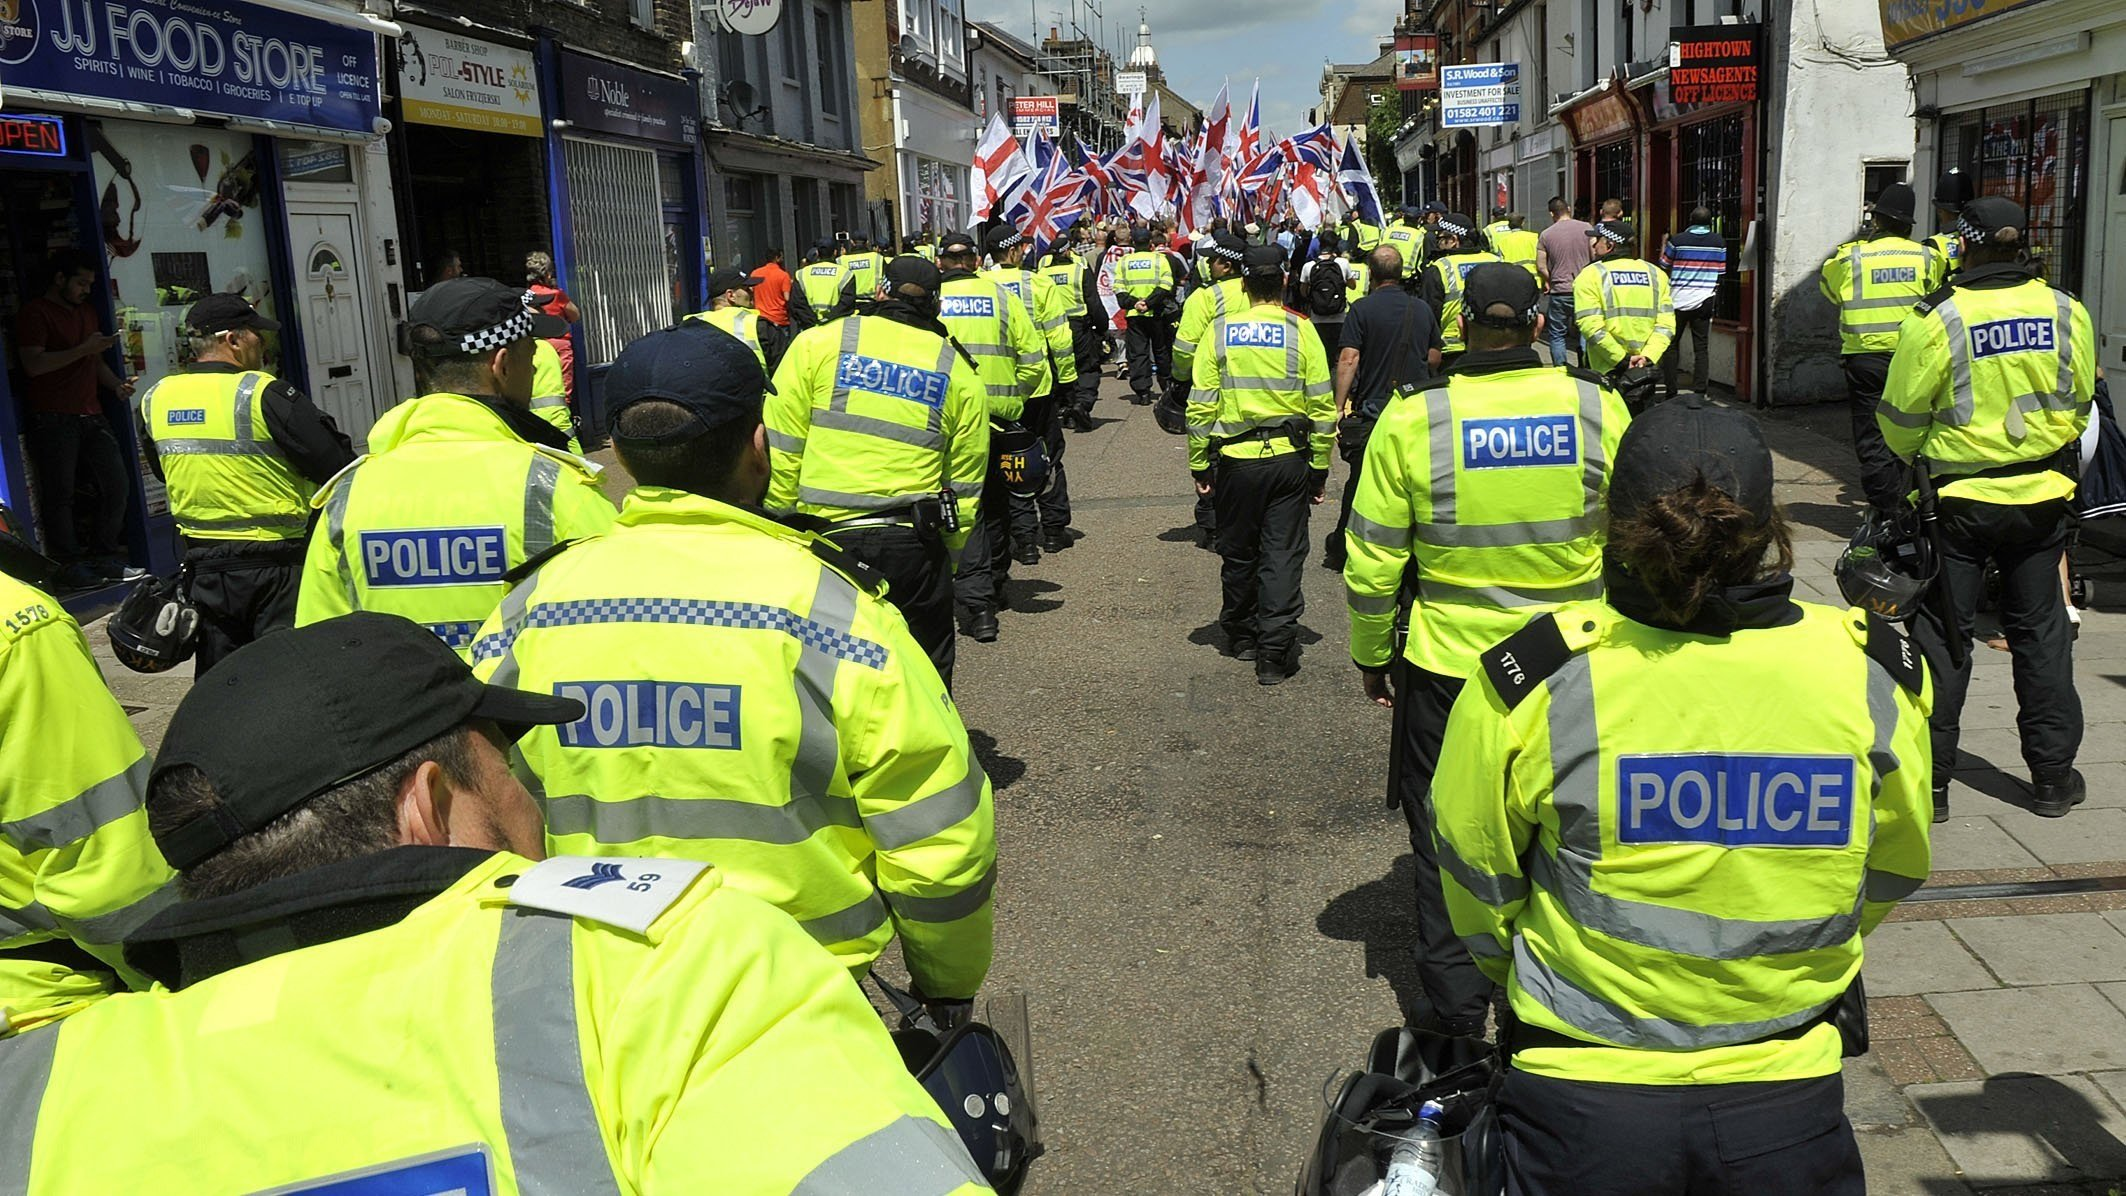 **This image is for use with this specific article only**  Police officers monitor a Britain First protest march in Luton, England, in June 2015.  CREDIT: Tony Margiocchi/Barcroft Media/Getty Images